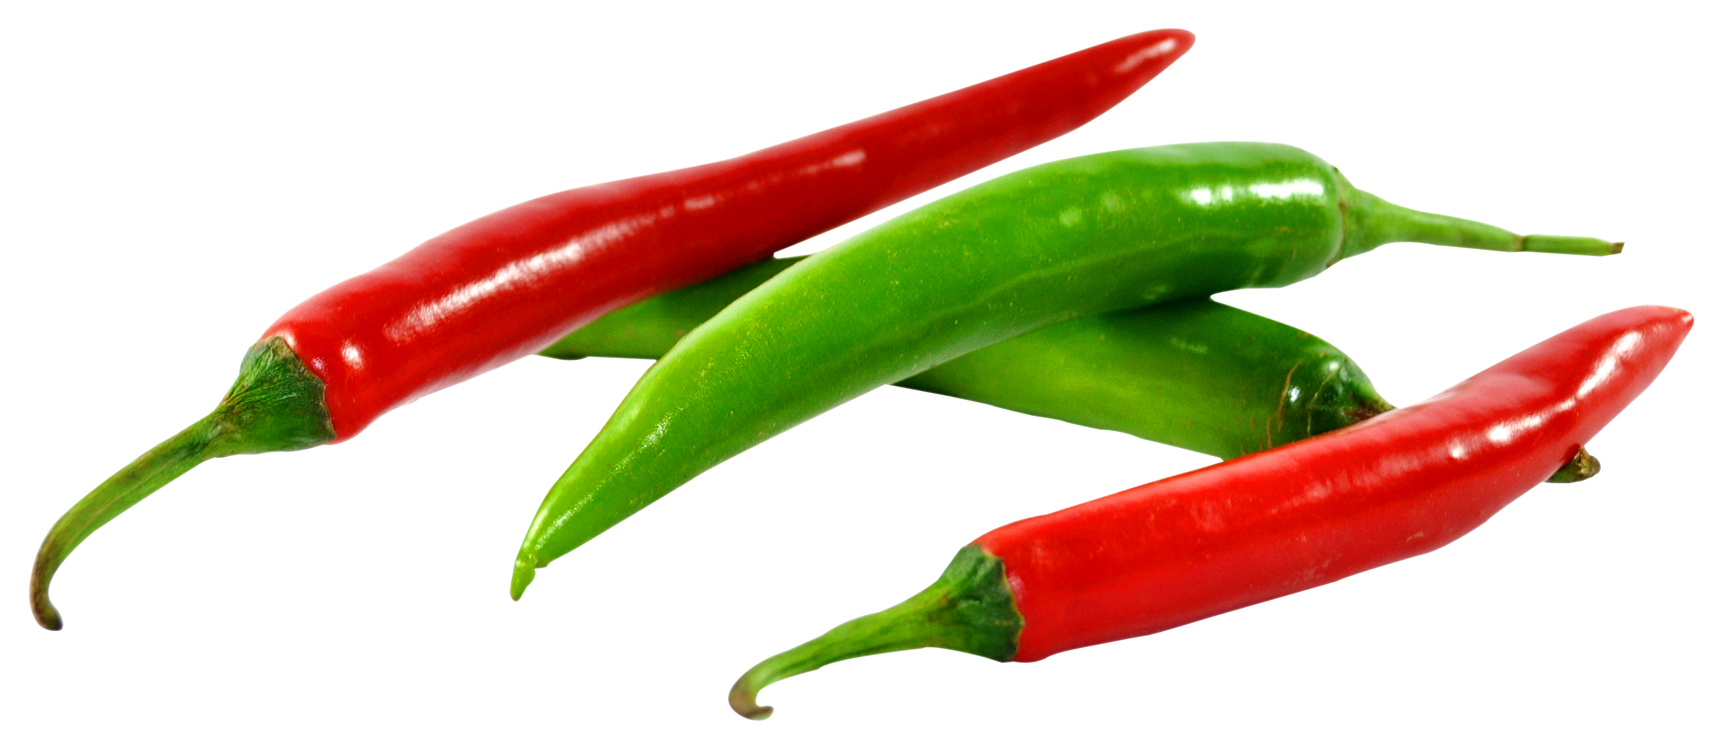 Green and Red Chilli PNG Image